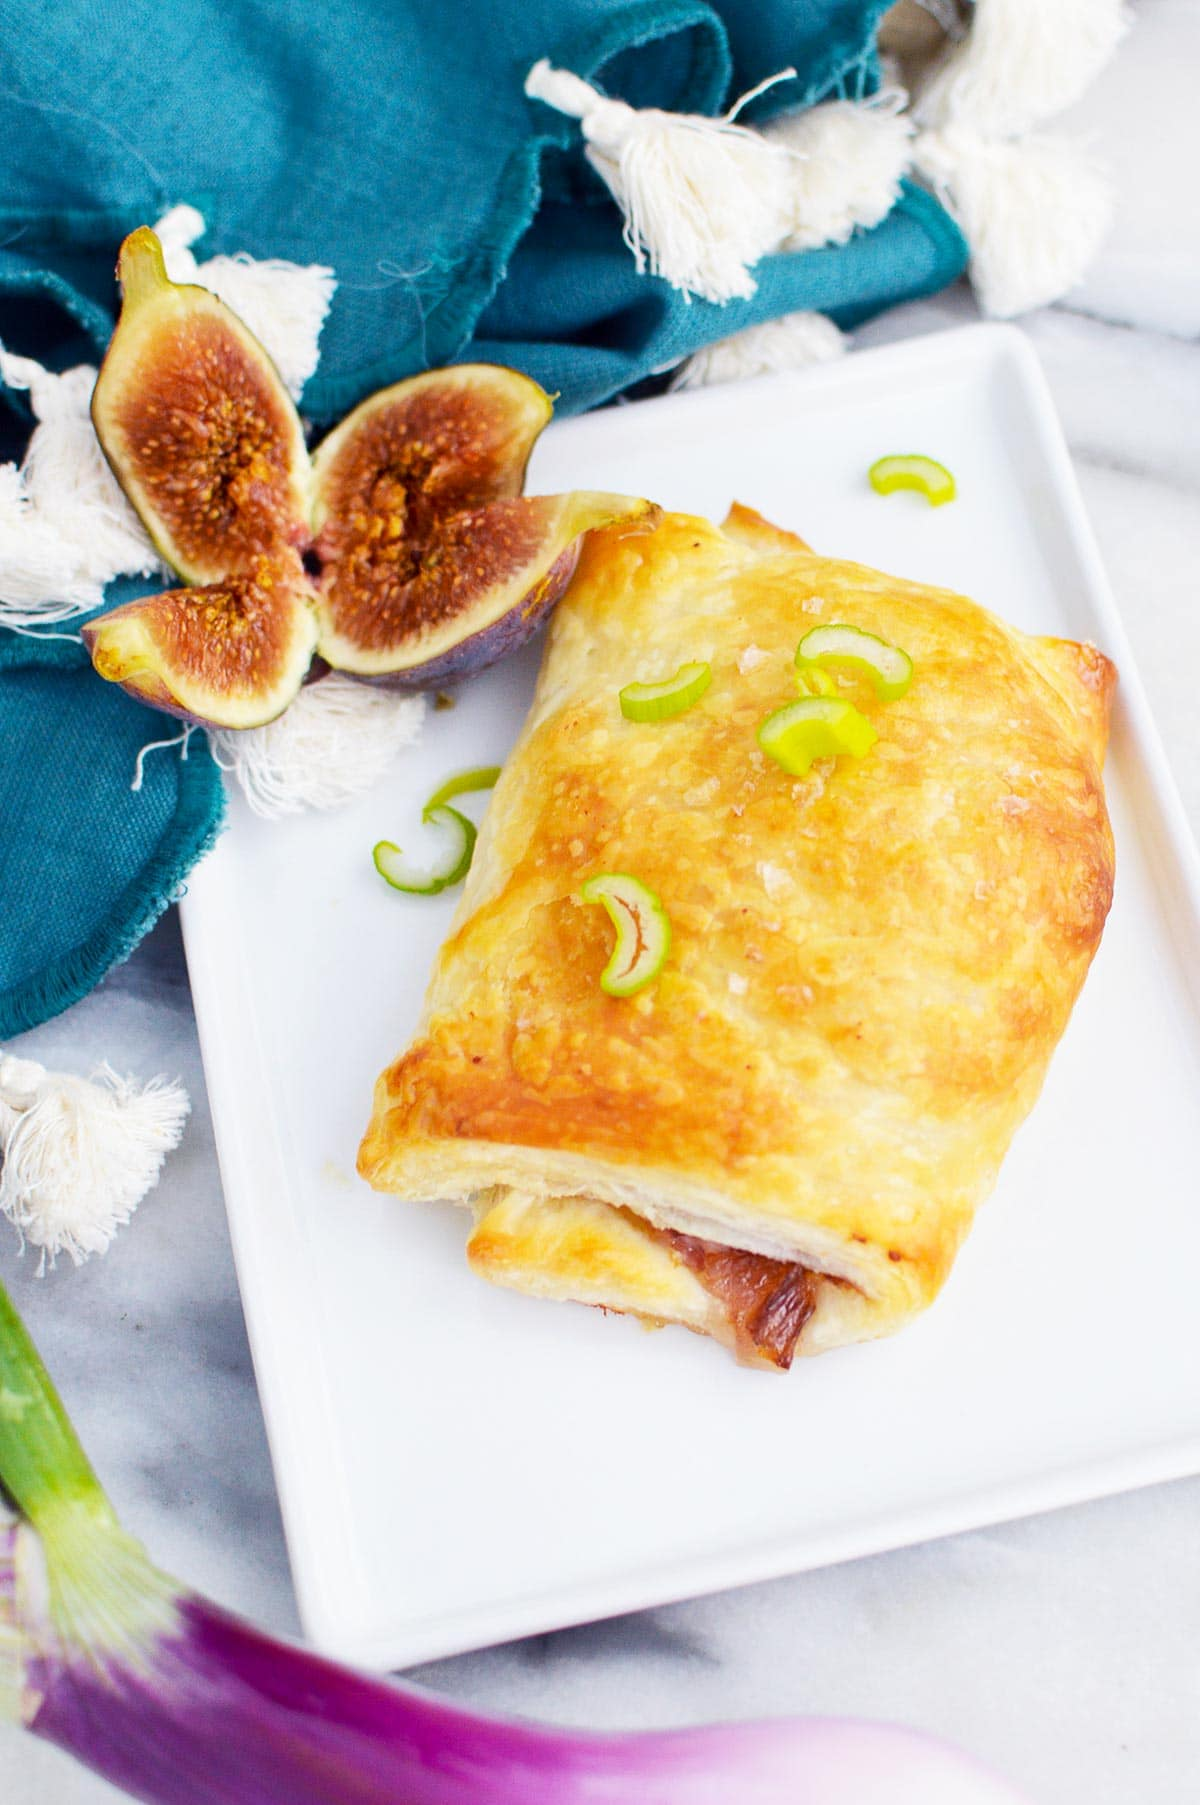 onion and fig puff pastry with figs on plate